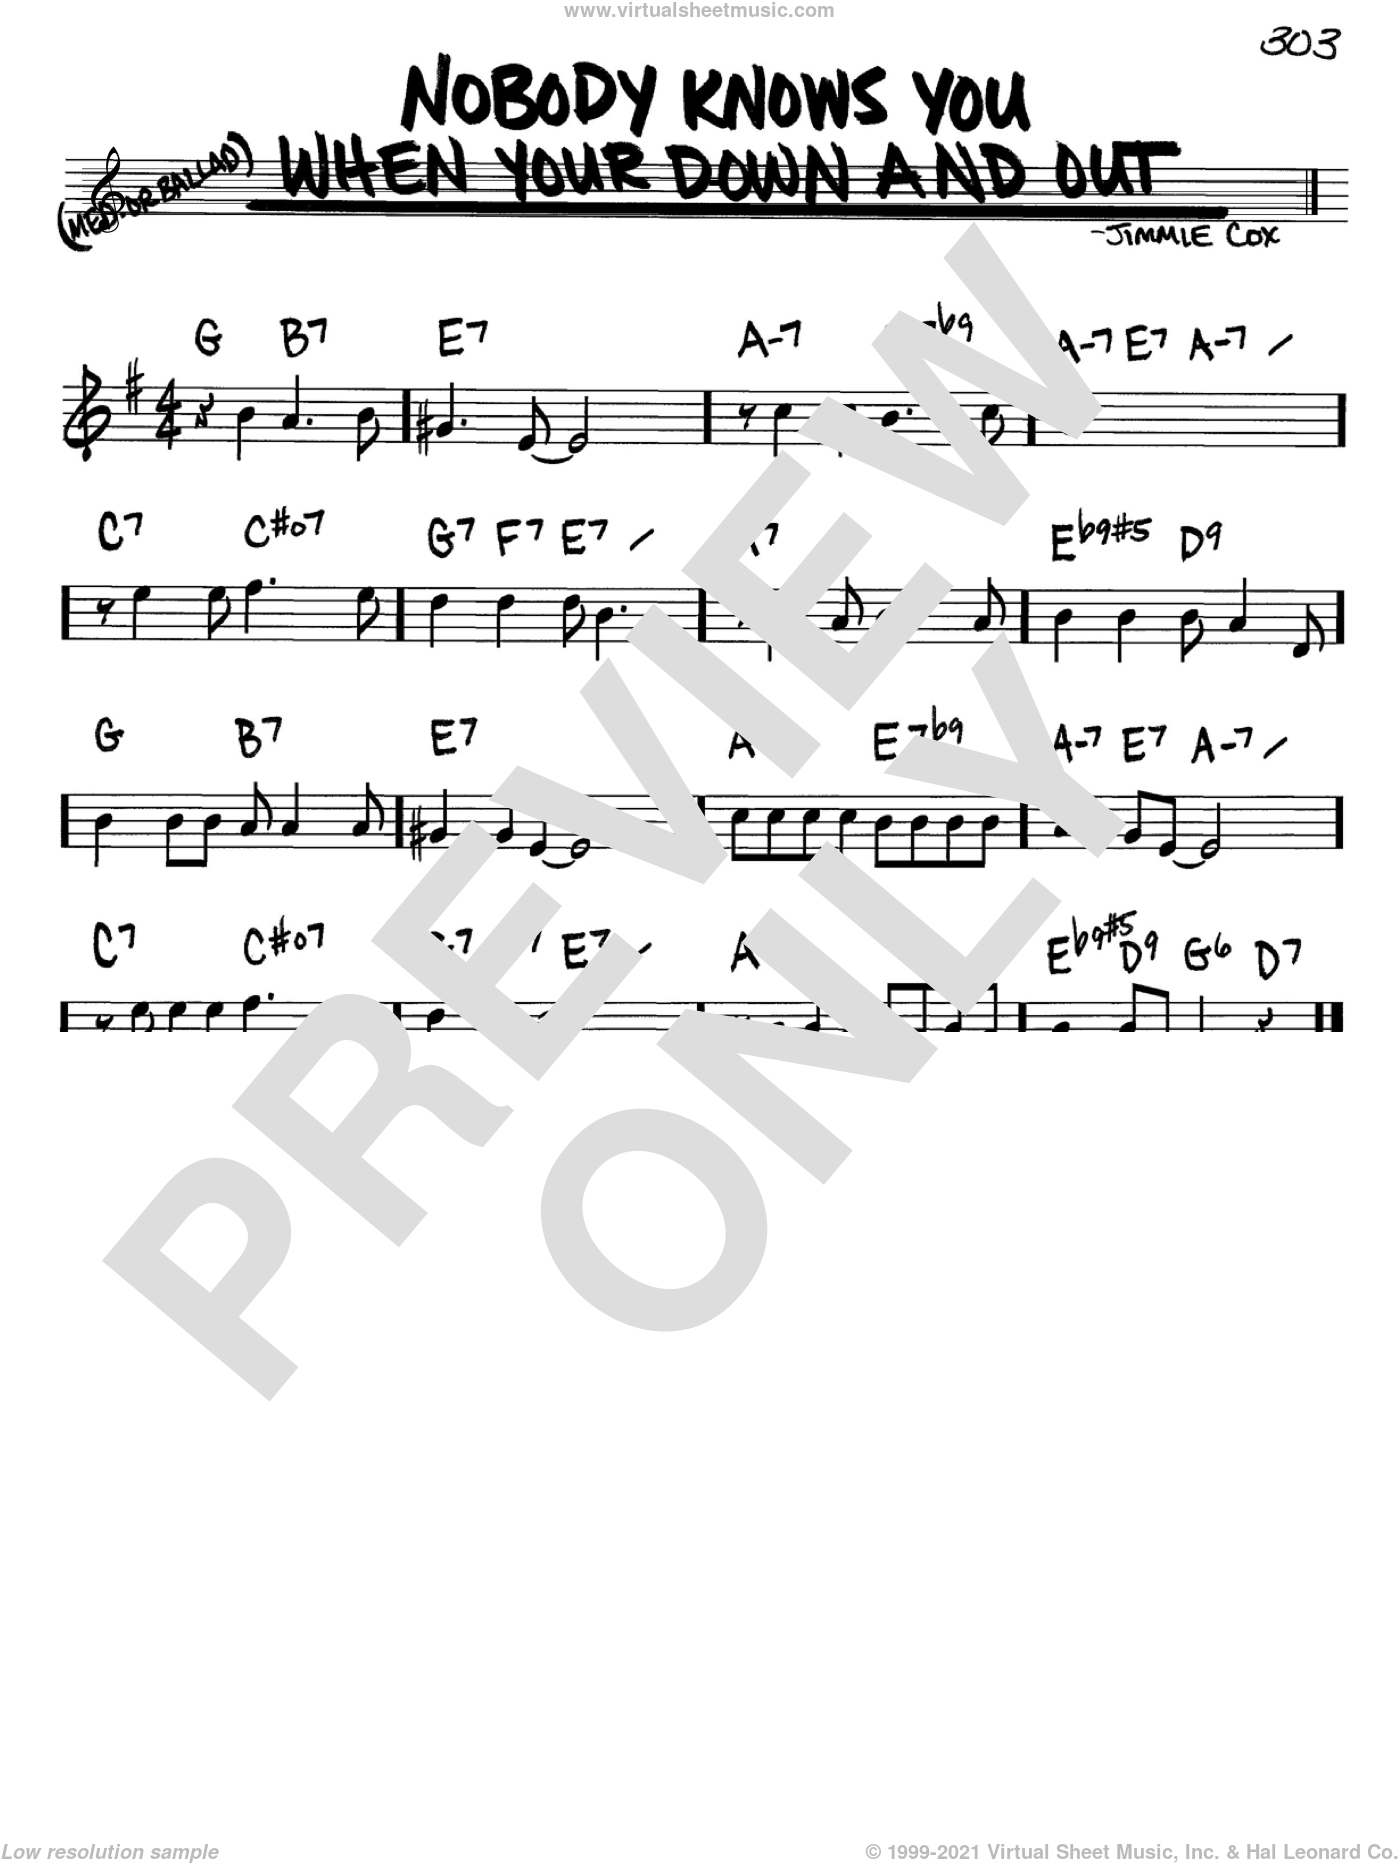 Nobody Knows You When You're Down And Out sheet music for voice and other instruments (in Bb) by Jimmie Cox, intermediate skill level